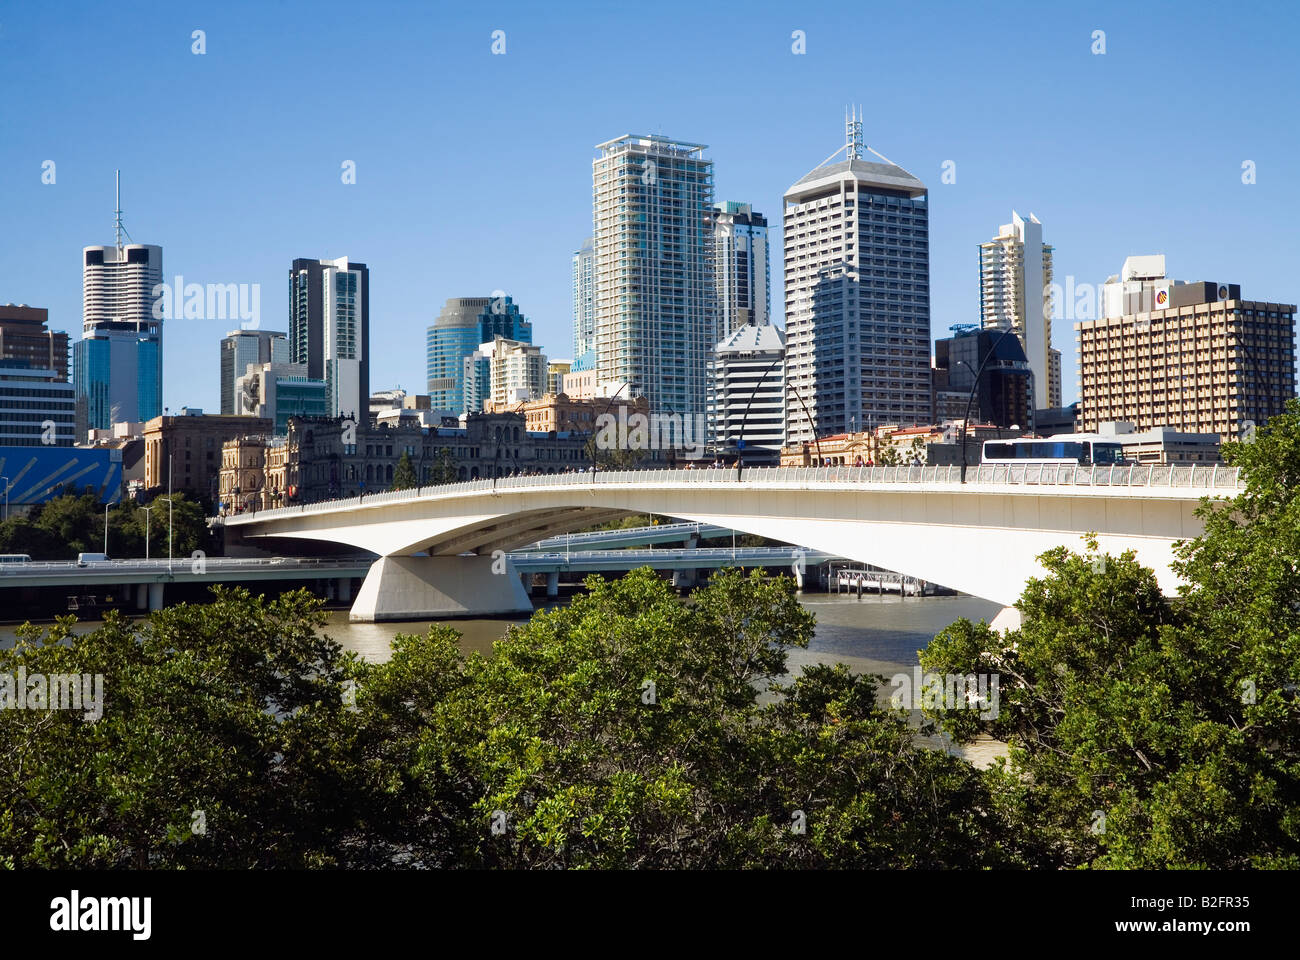 Bribane city - Brisbane, Queensland, AUSTRALIA - Stock Image